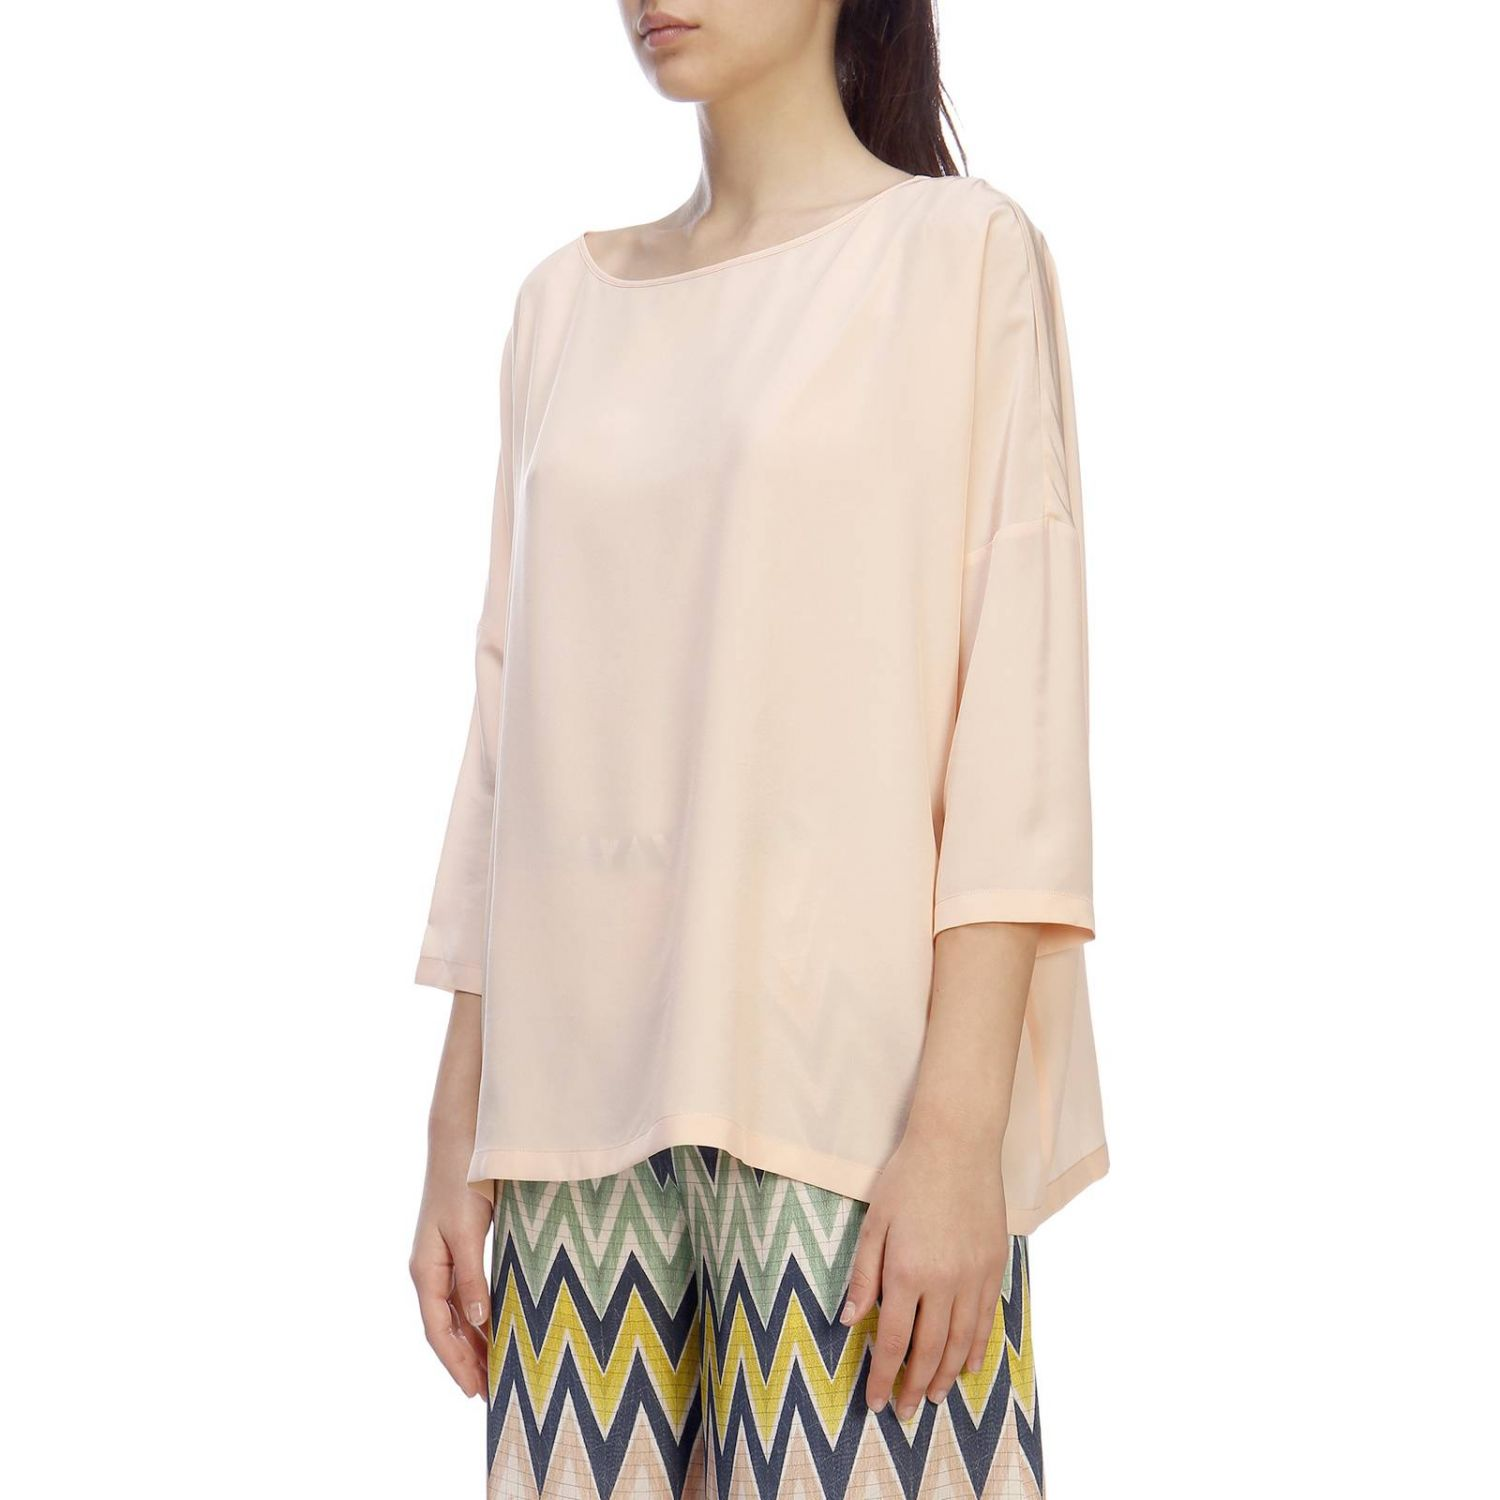 Top mujer M Missoni rosa pálido 2